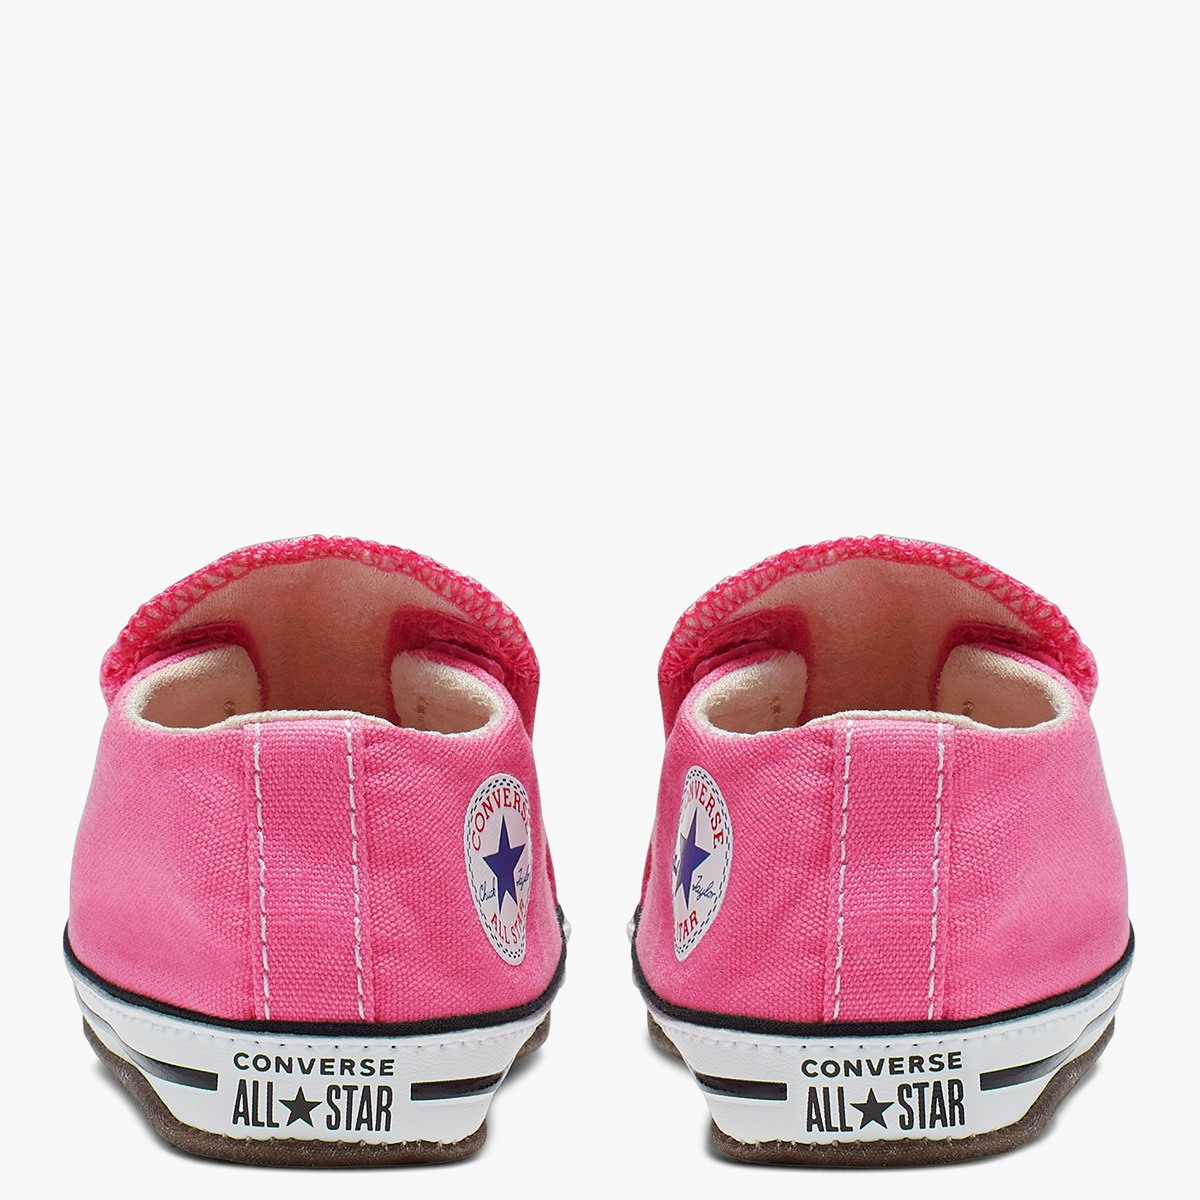 all star sneakers pink color